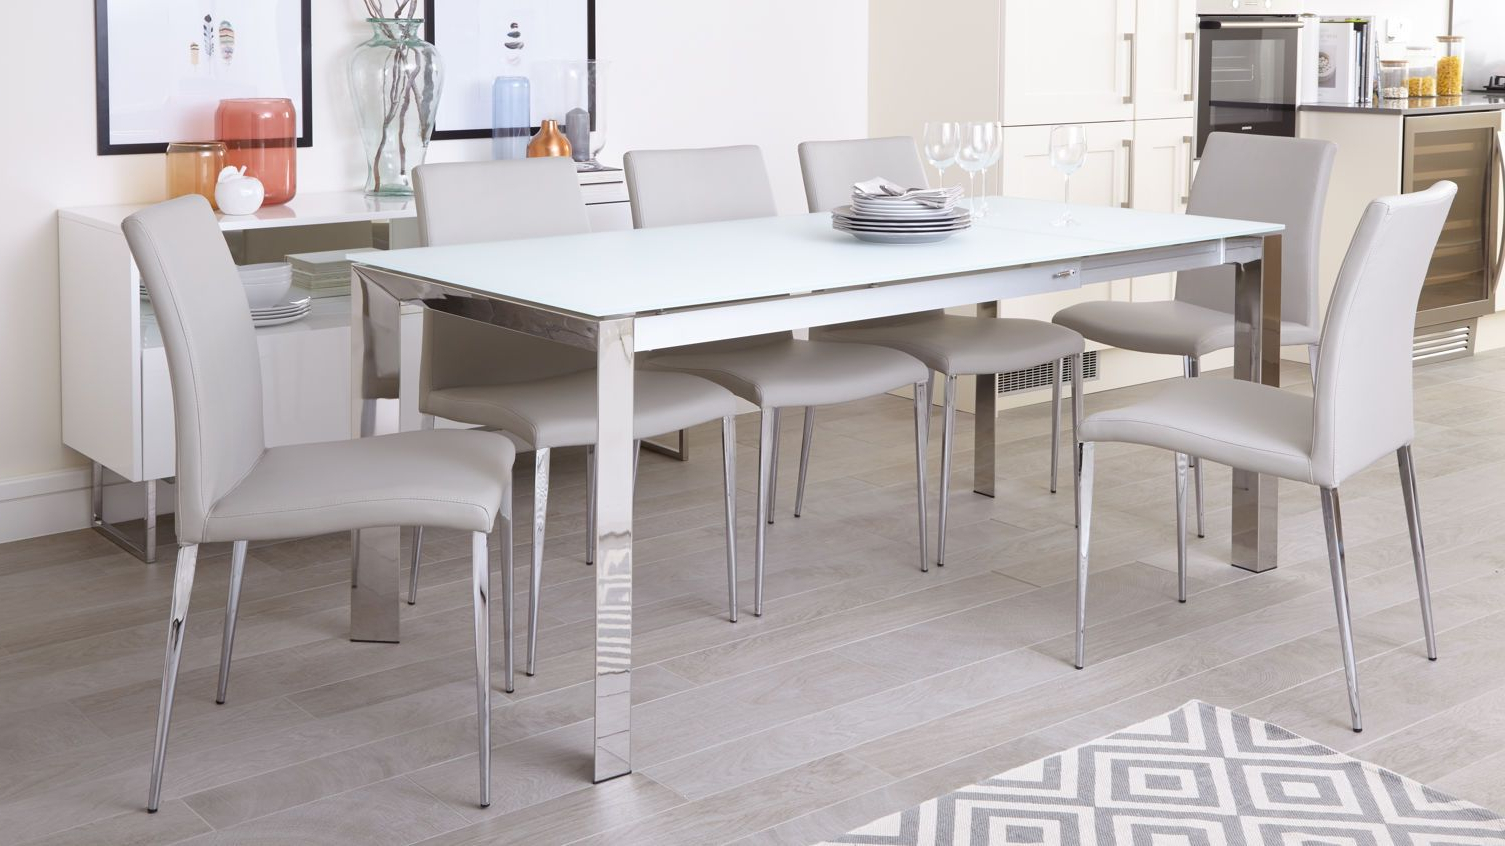 Eve White Frosted Glass With Chrome And Elise Extending Throughout Newest Chrome Contemporary Square Casual Dining Tables (View 16 of 30)